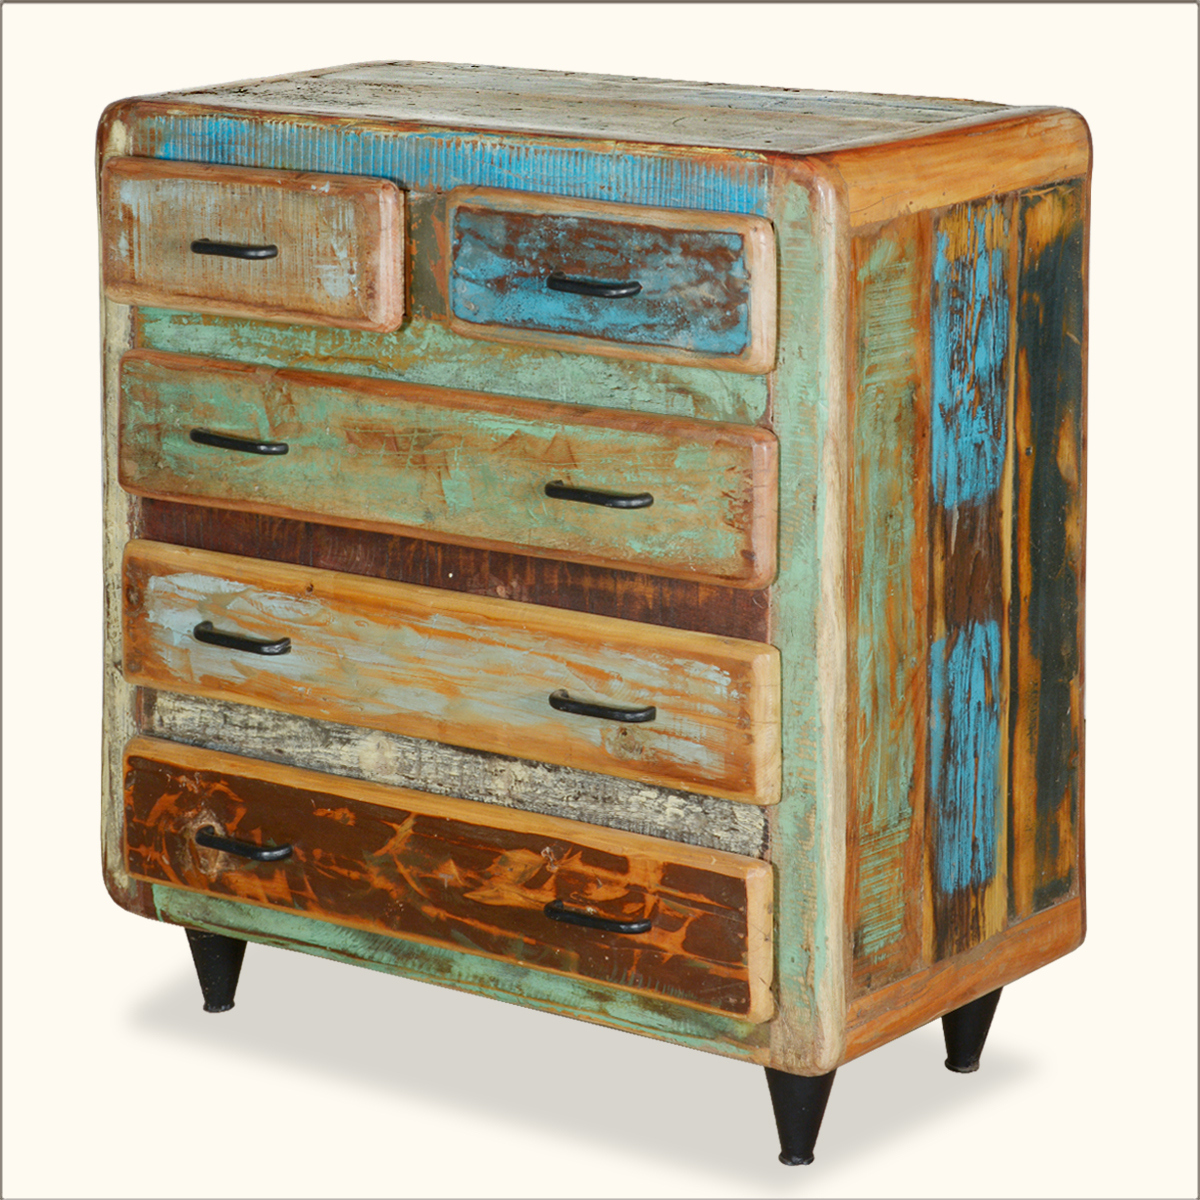 Reclaimed Wood Rustic 5 Storage Drawer Chest Bedroom Dresser Cabinet Furniture Ebay